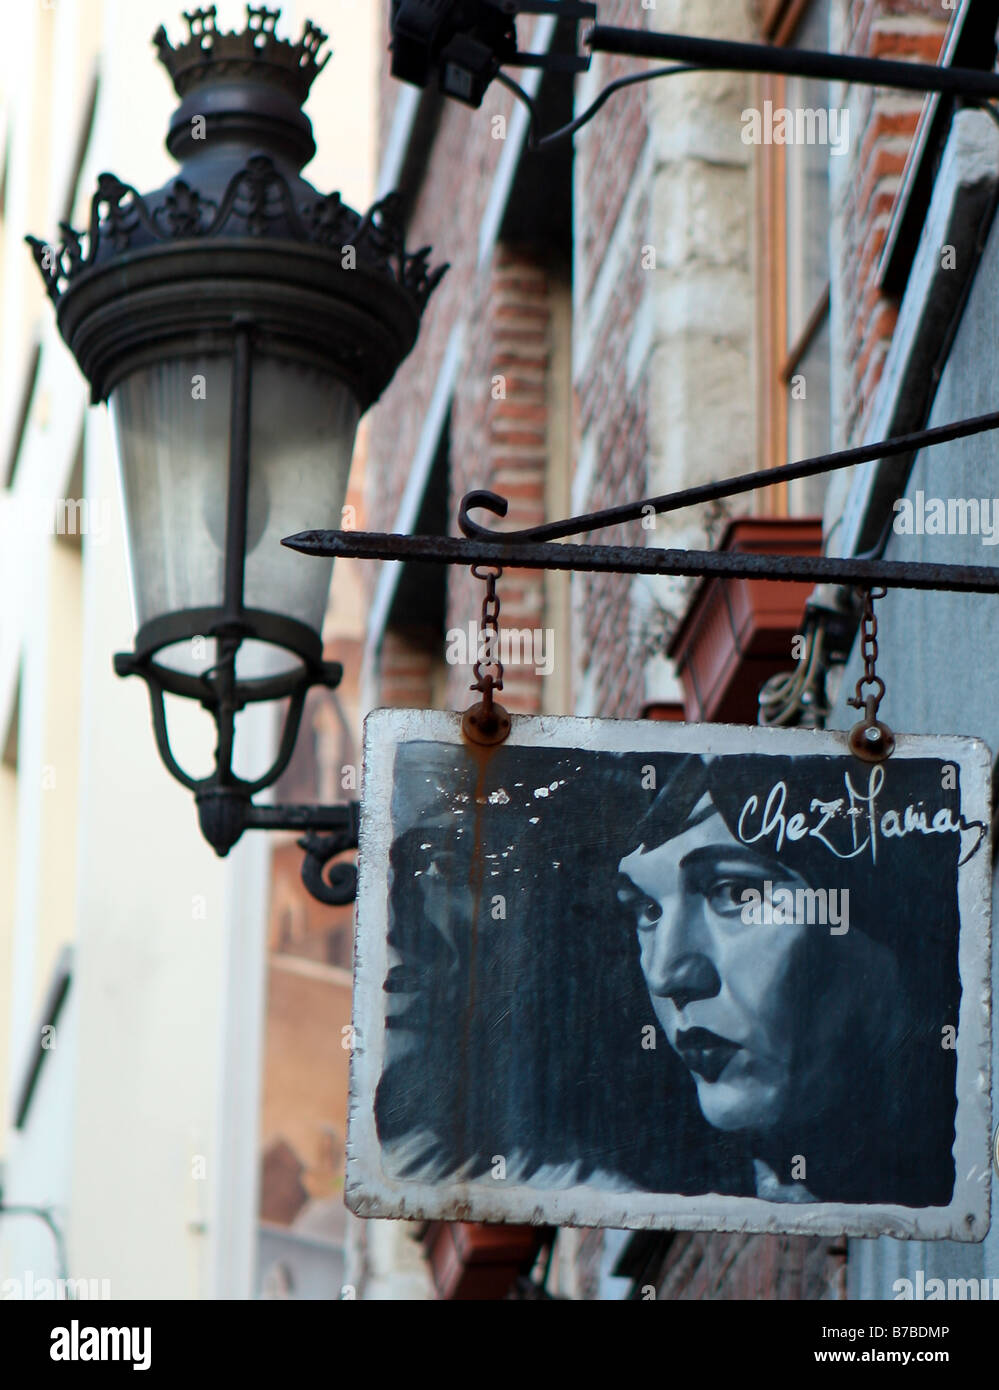 Chez Maman sign Brussels - Stock Image